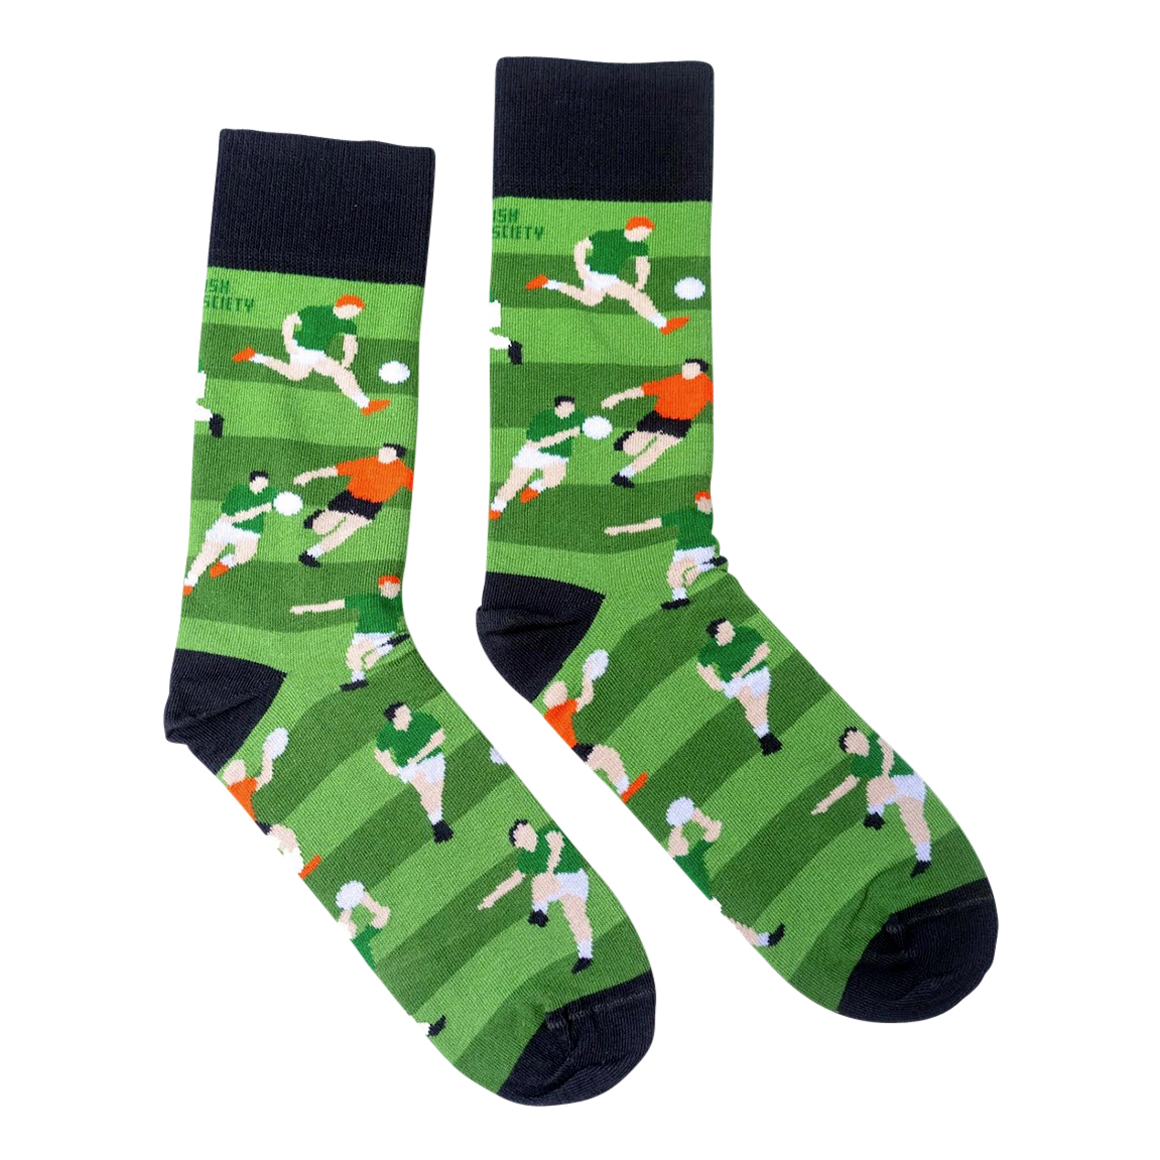 Irish Sock Society - Gaelic Football Socks